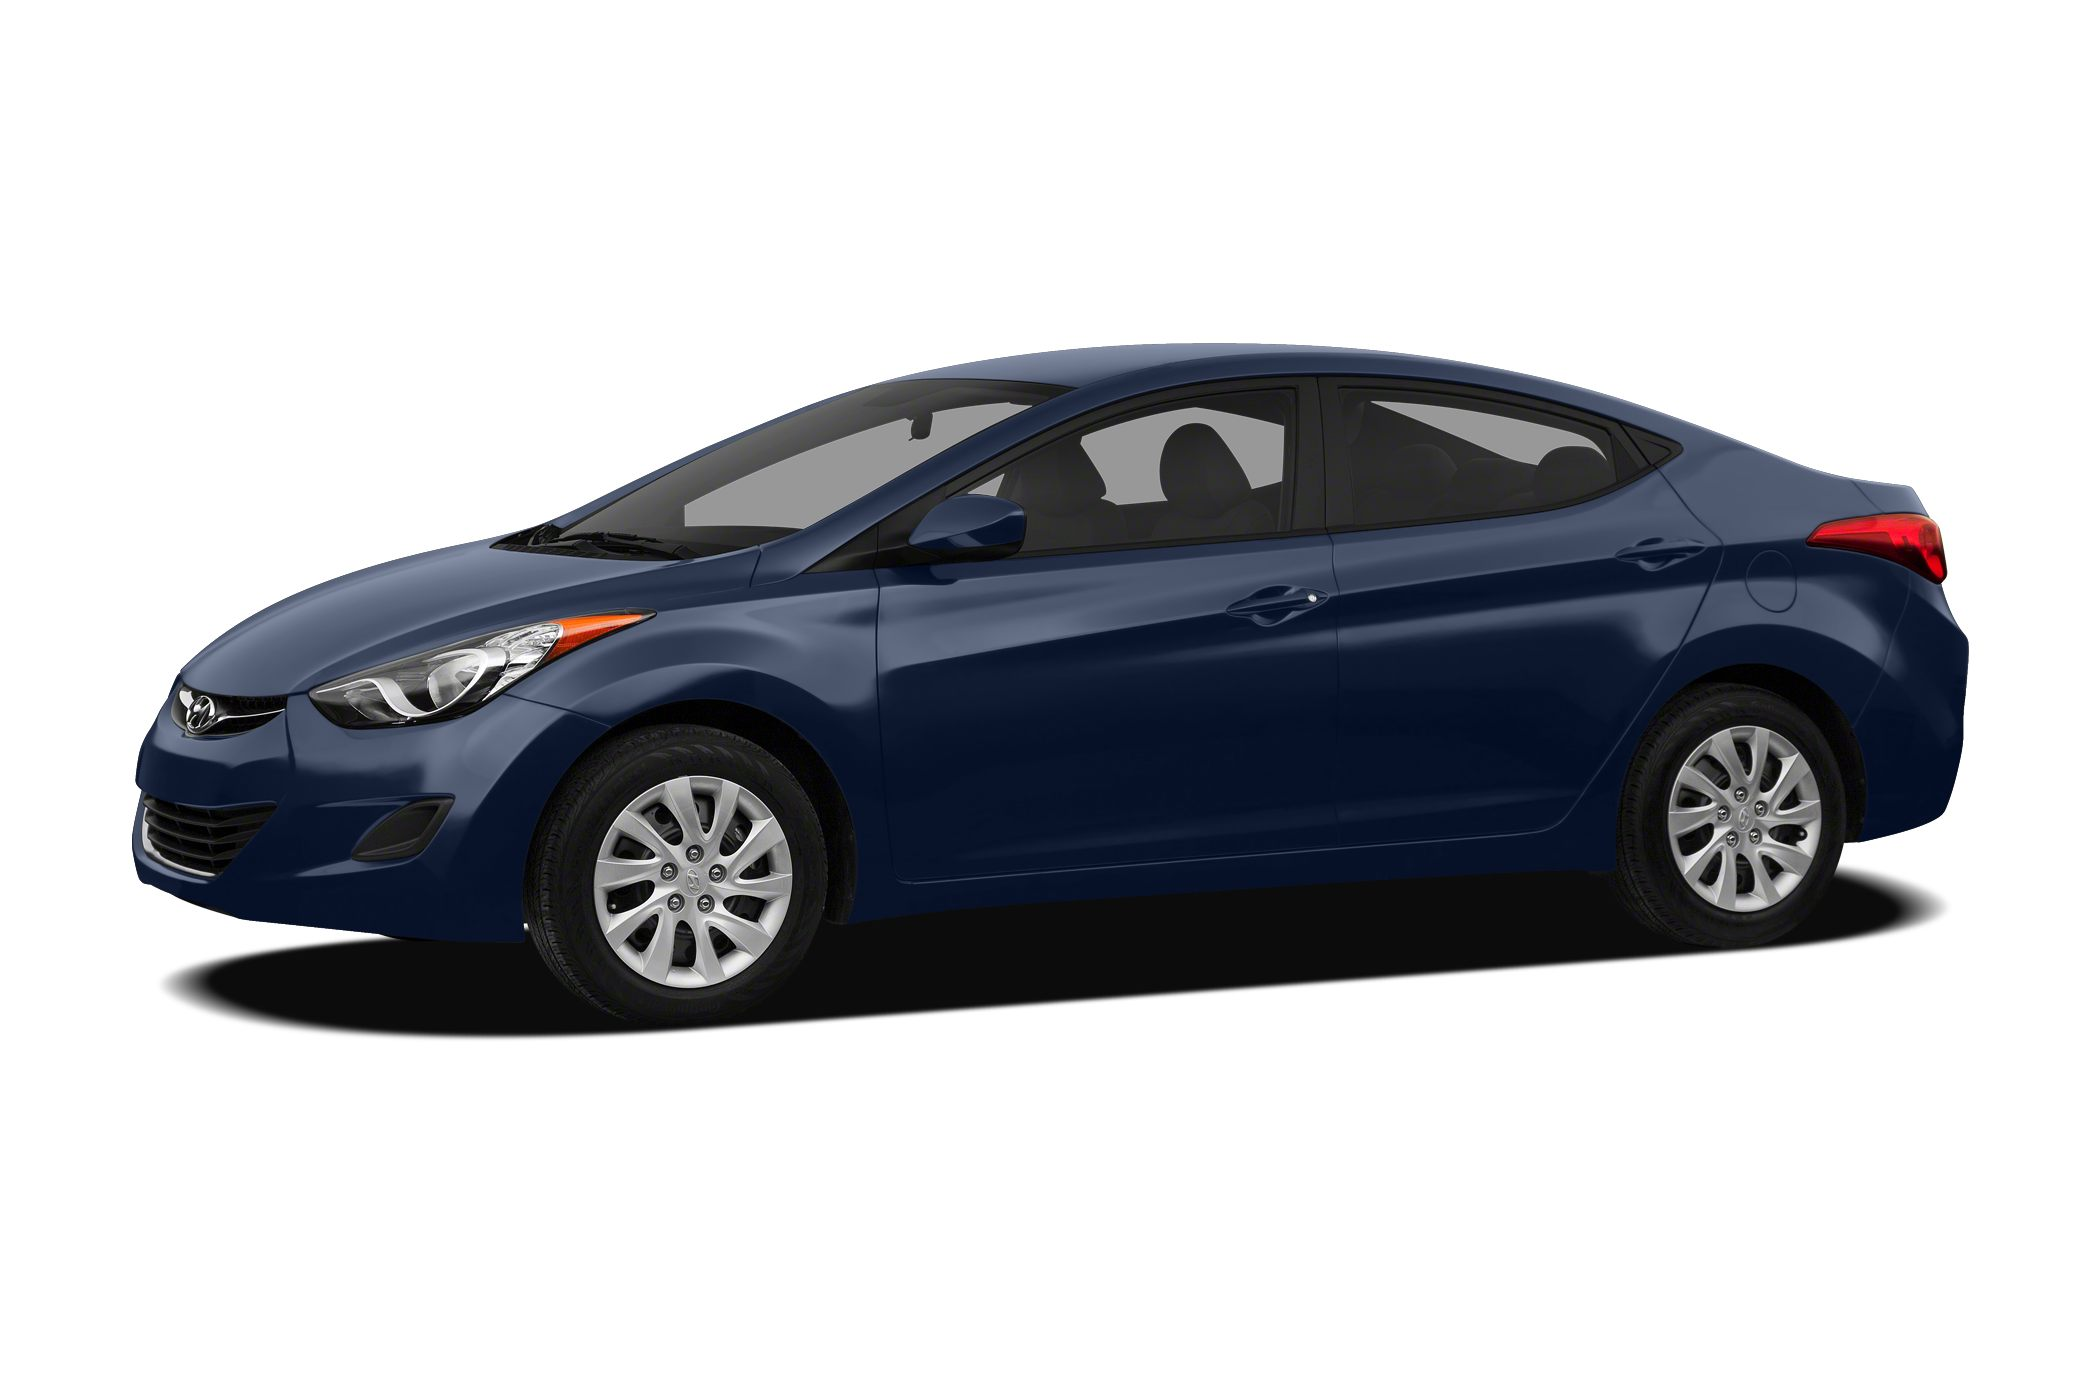 2012 Hyundai Elantra GLS Vehicle Options ABS Brakes Front Heated Seat Second Row Folding Seat Air